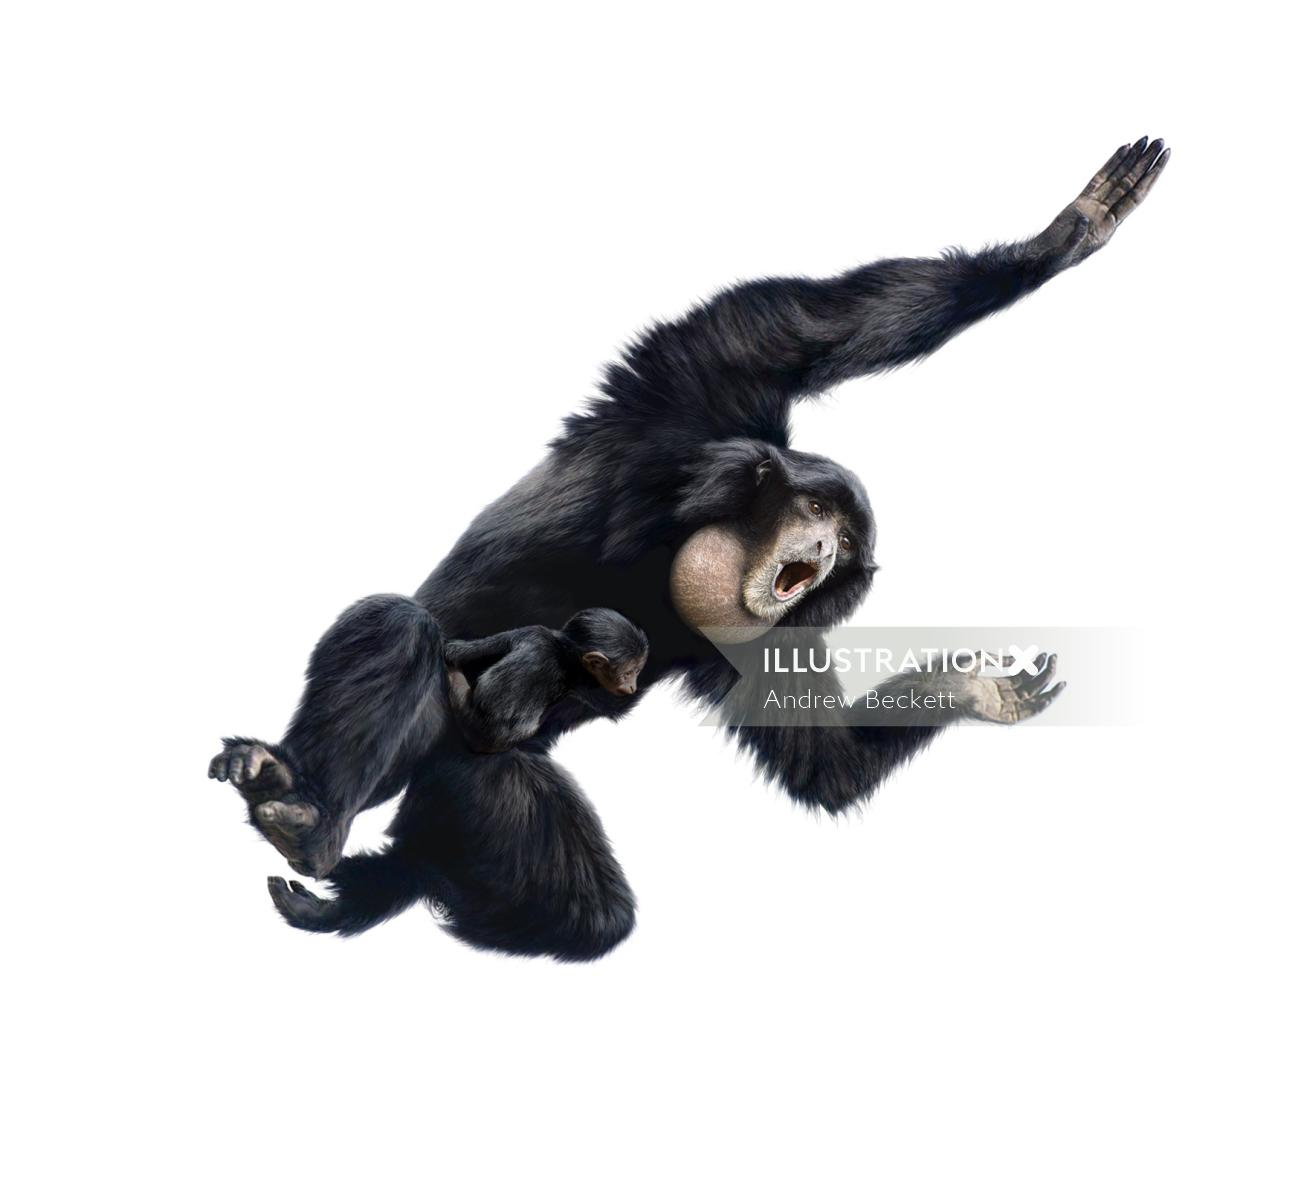 Illustration of a Chimpanzee with her baby